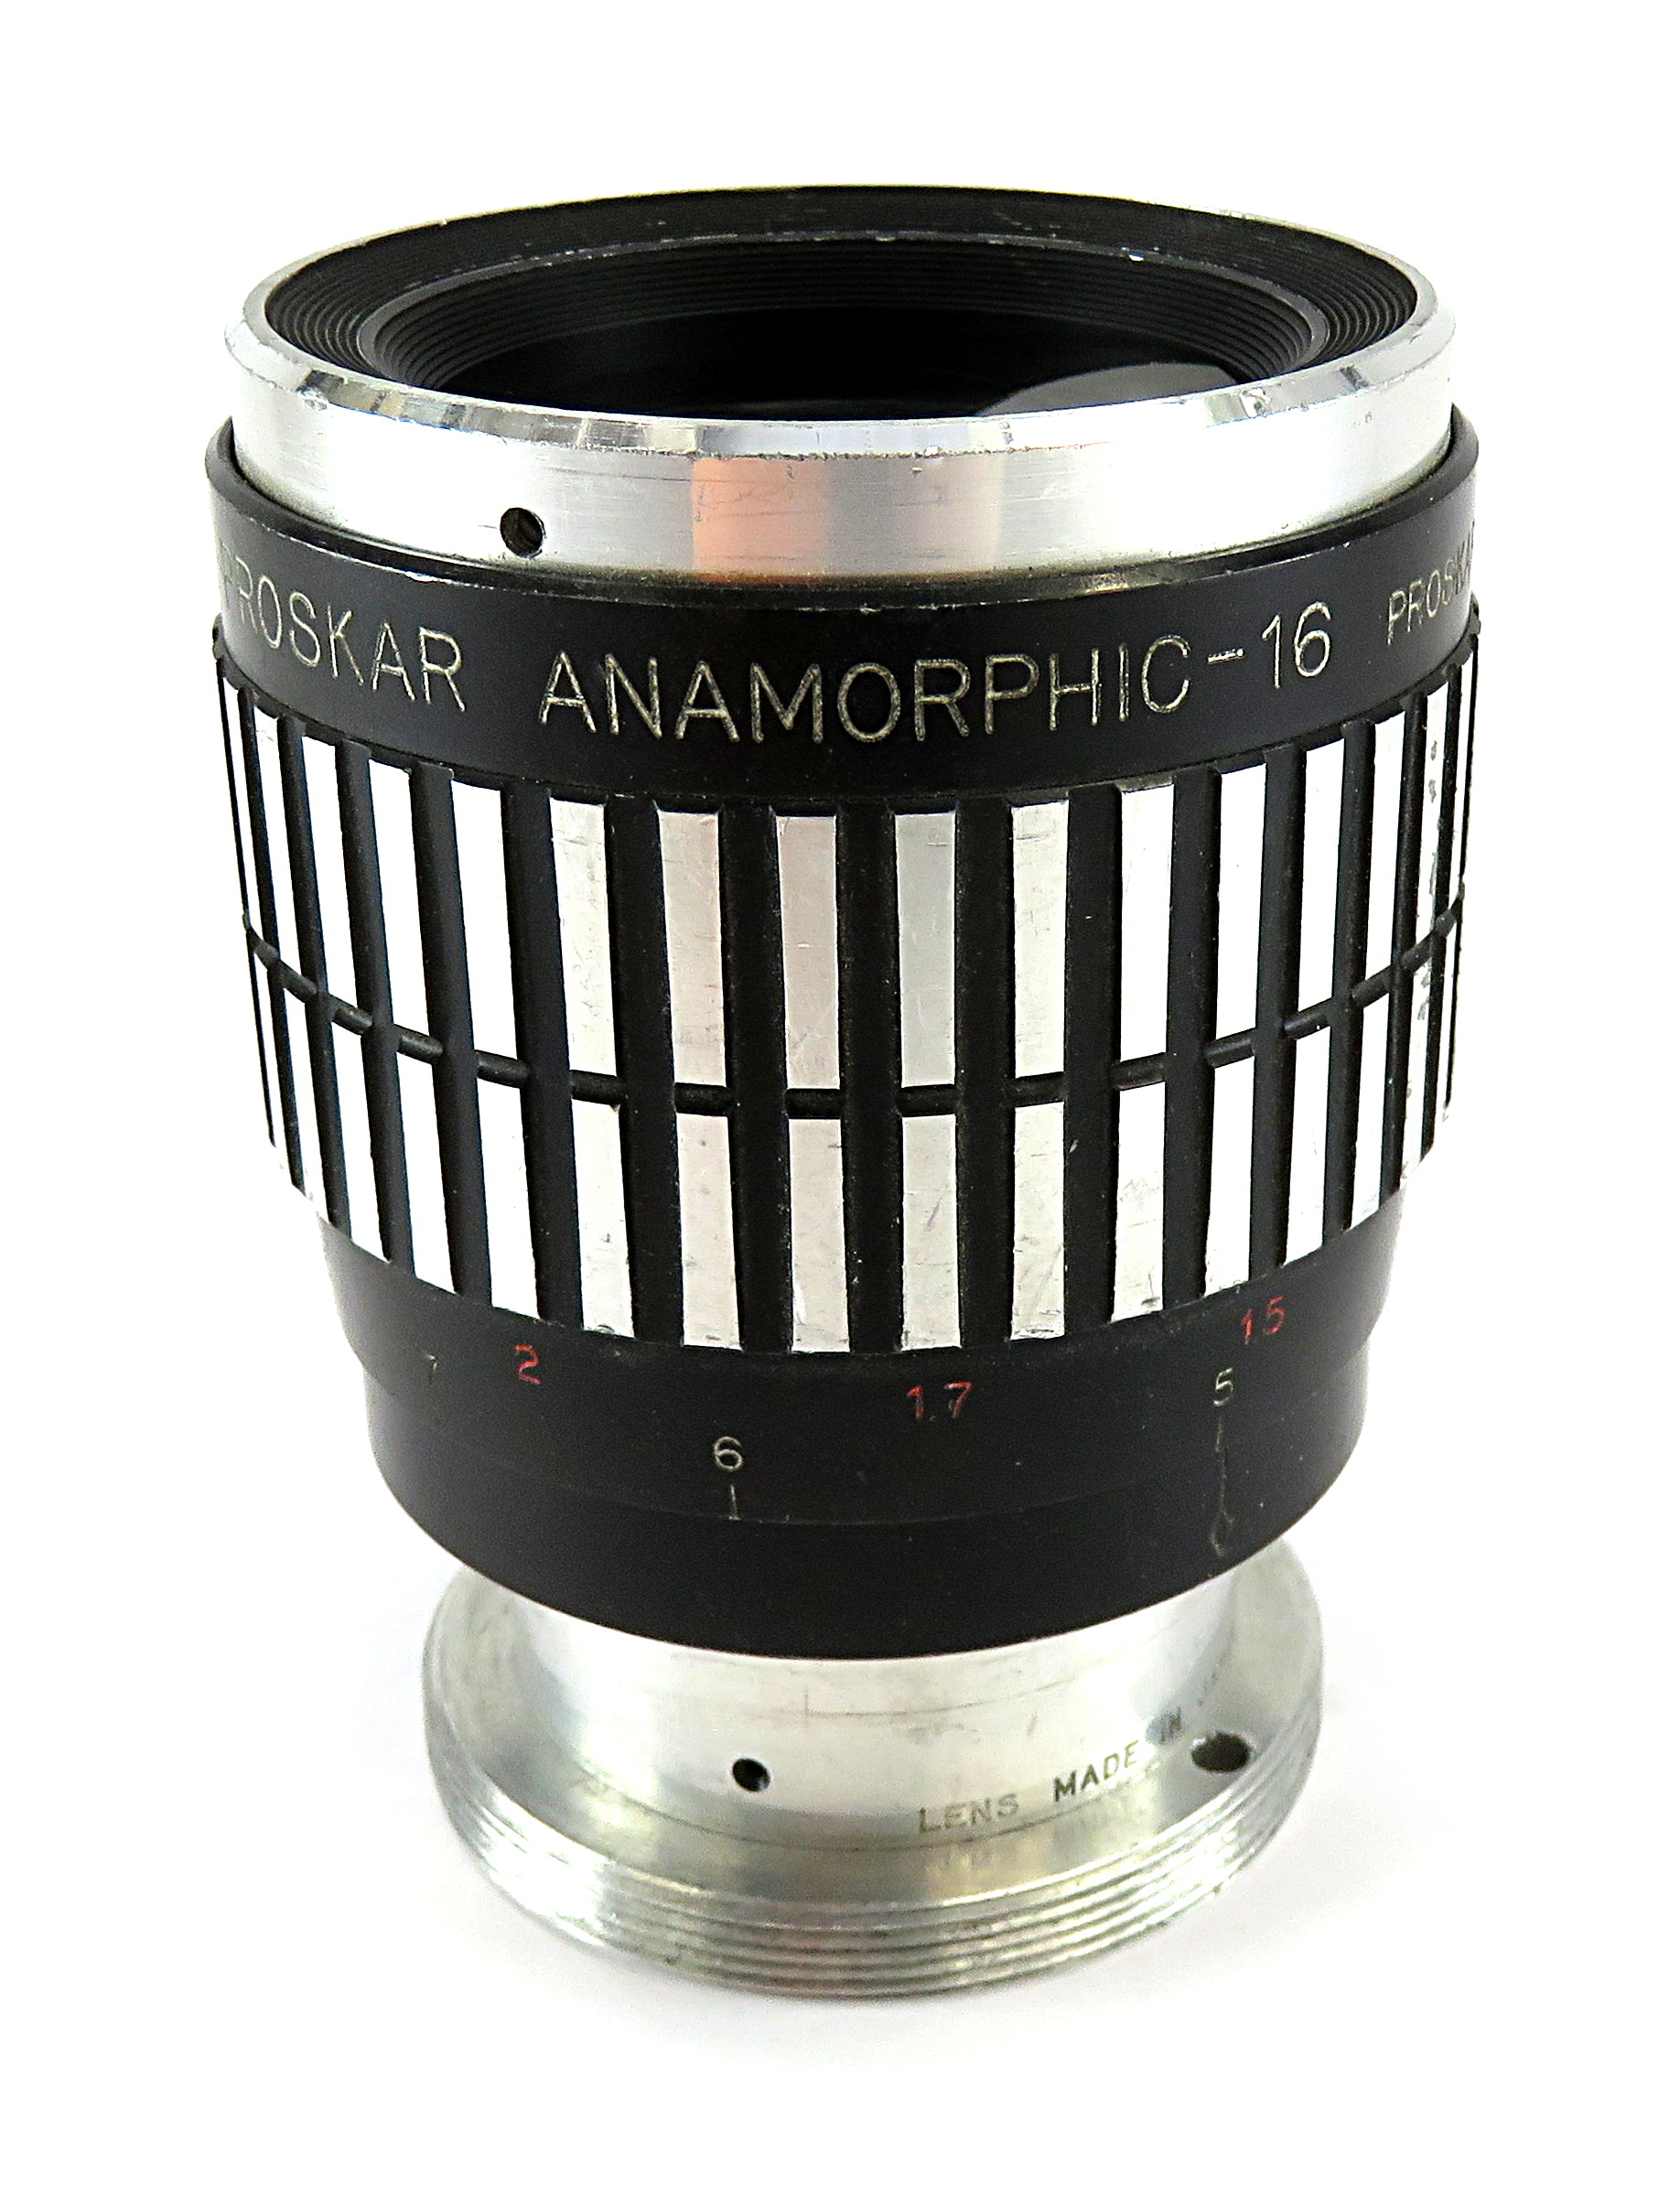 Ishico PROSKAR ANAMORPHIC-16 2x Horizontal Magnification Projector Lens